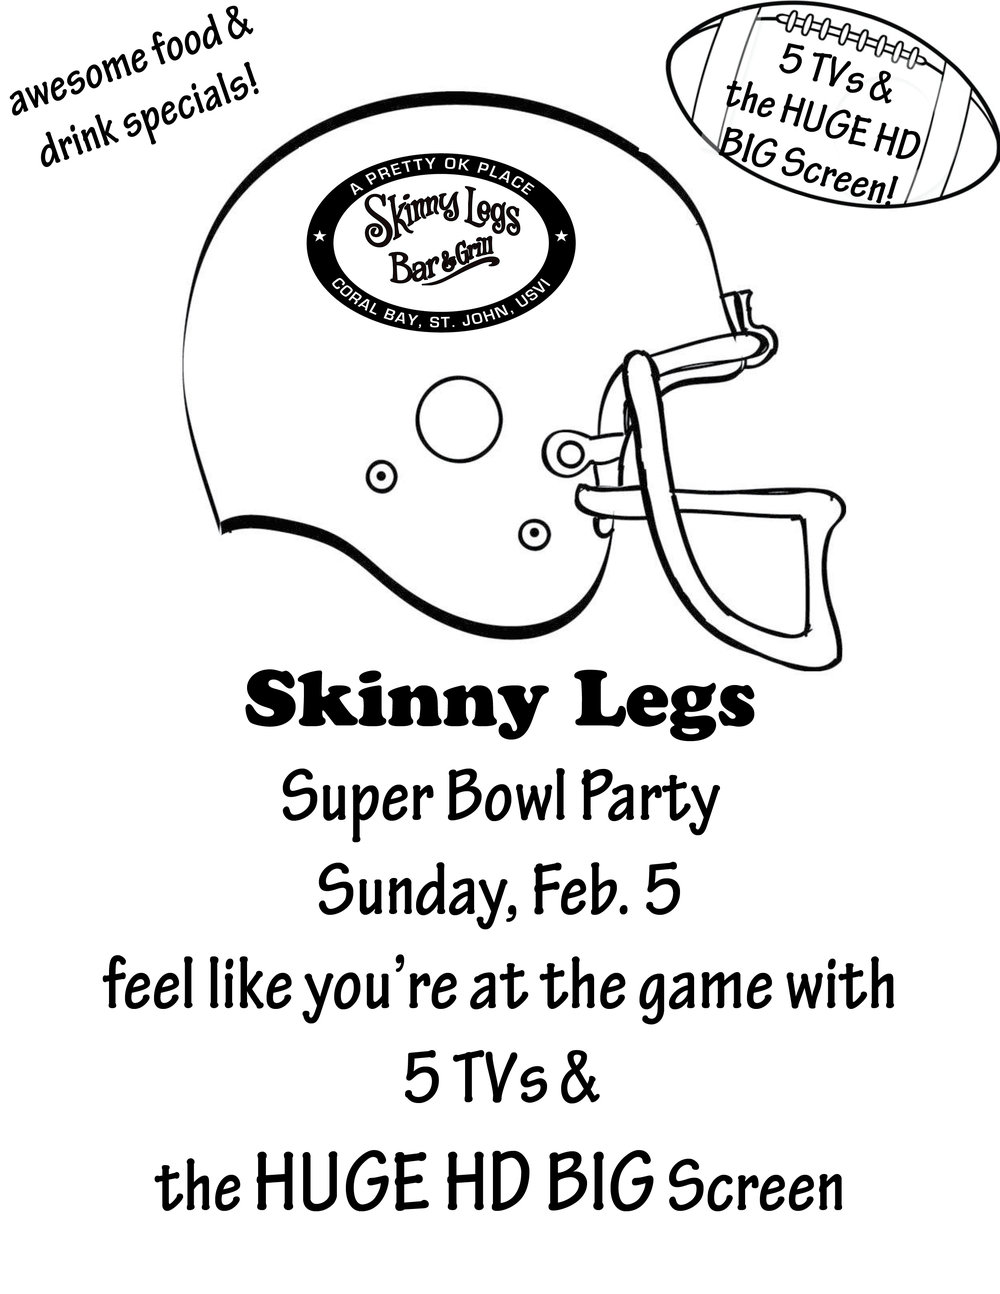 Super Awesome Super Bowl Party! — Skinny Legs Bar and Grill